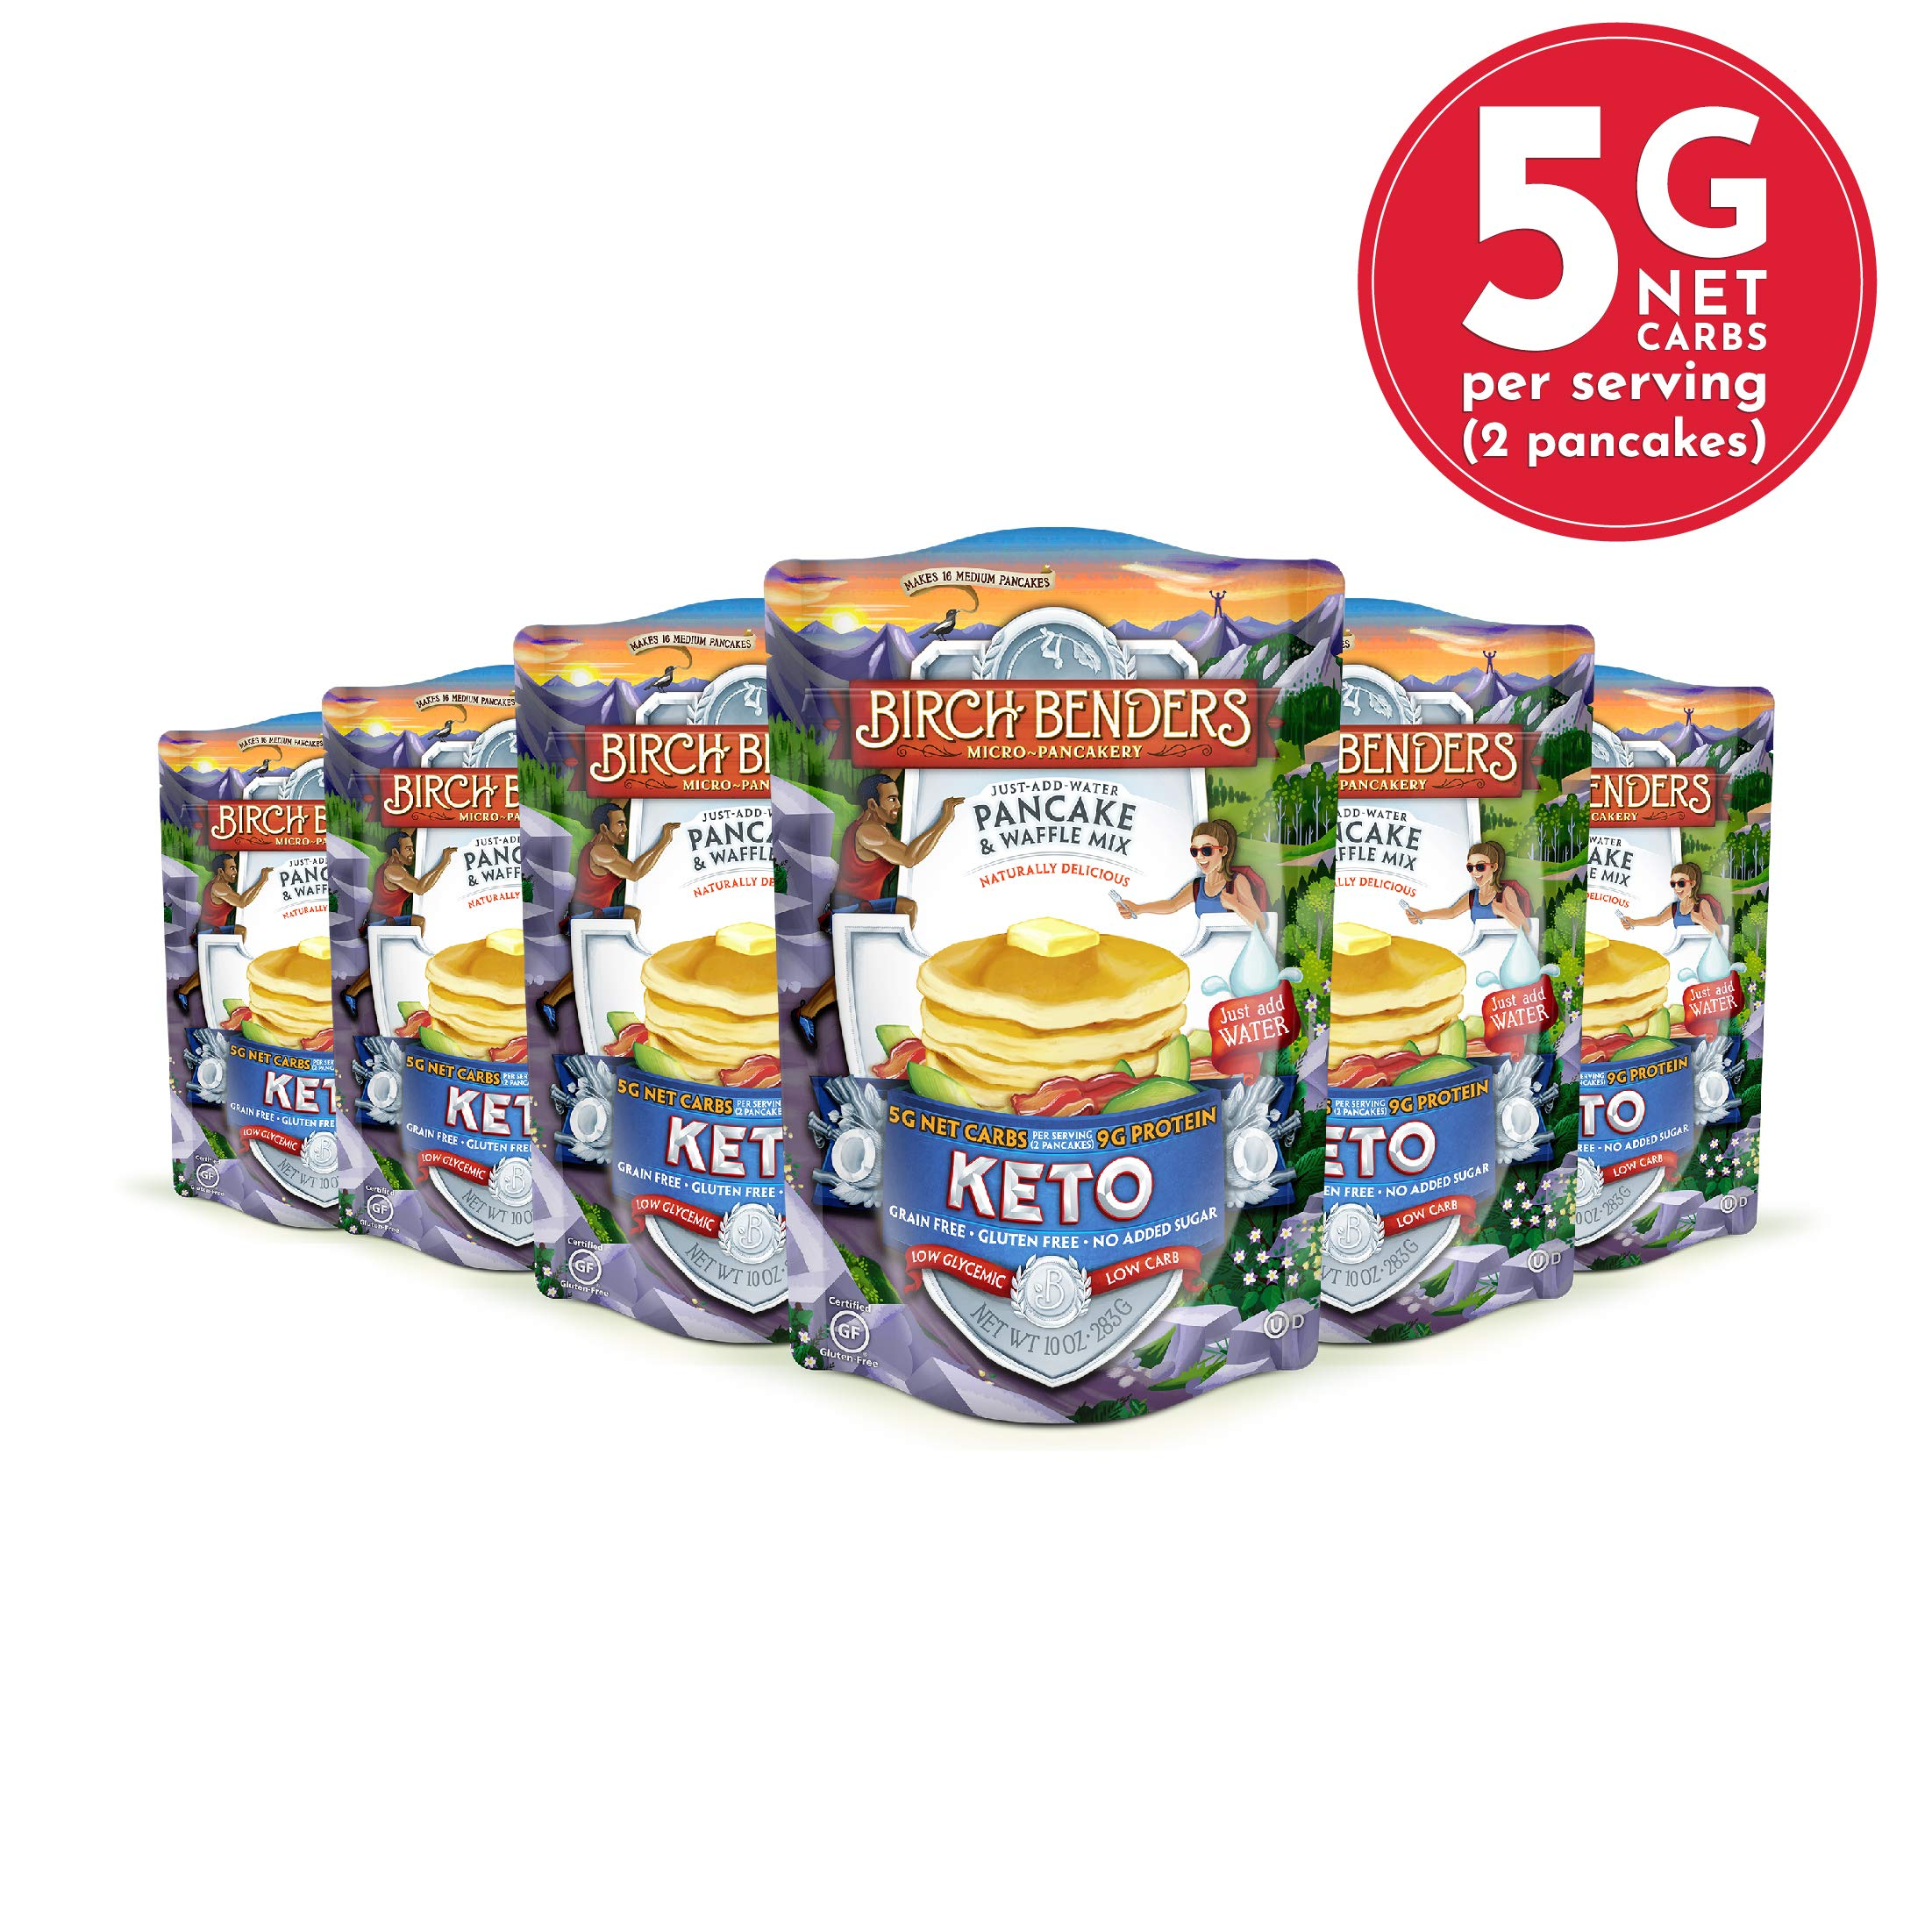 Keto Pancake & Waffle Mix by Birch Benders, Low-Carb, High Protein, Grain-free, Gluten-free, Low Glycemic, Keto-Friendly, Made with Almond, Coconut & Cassava Flour, 6 Pack (10oz each) by Birch Benders